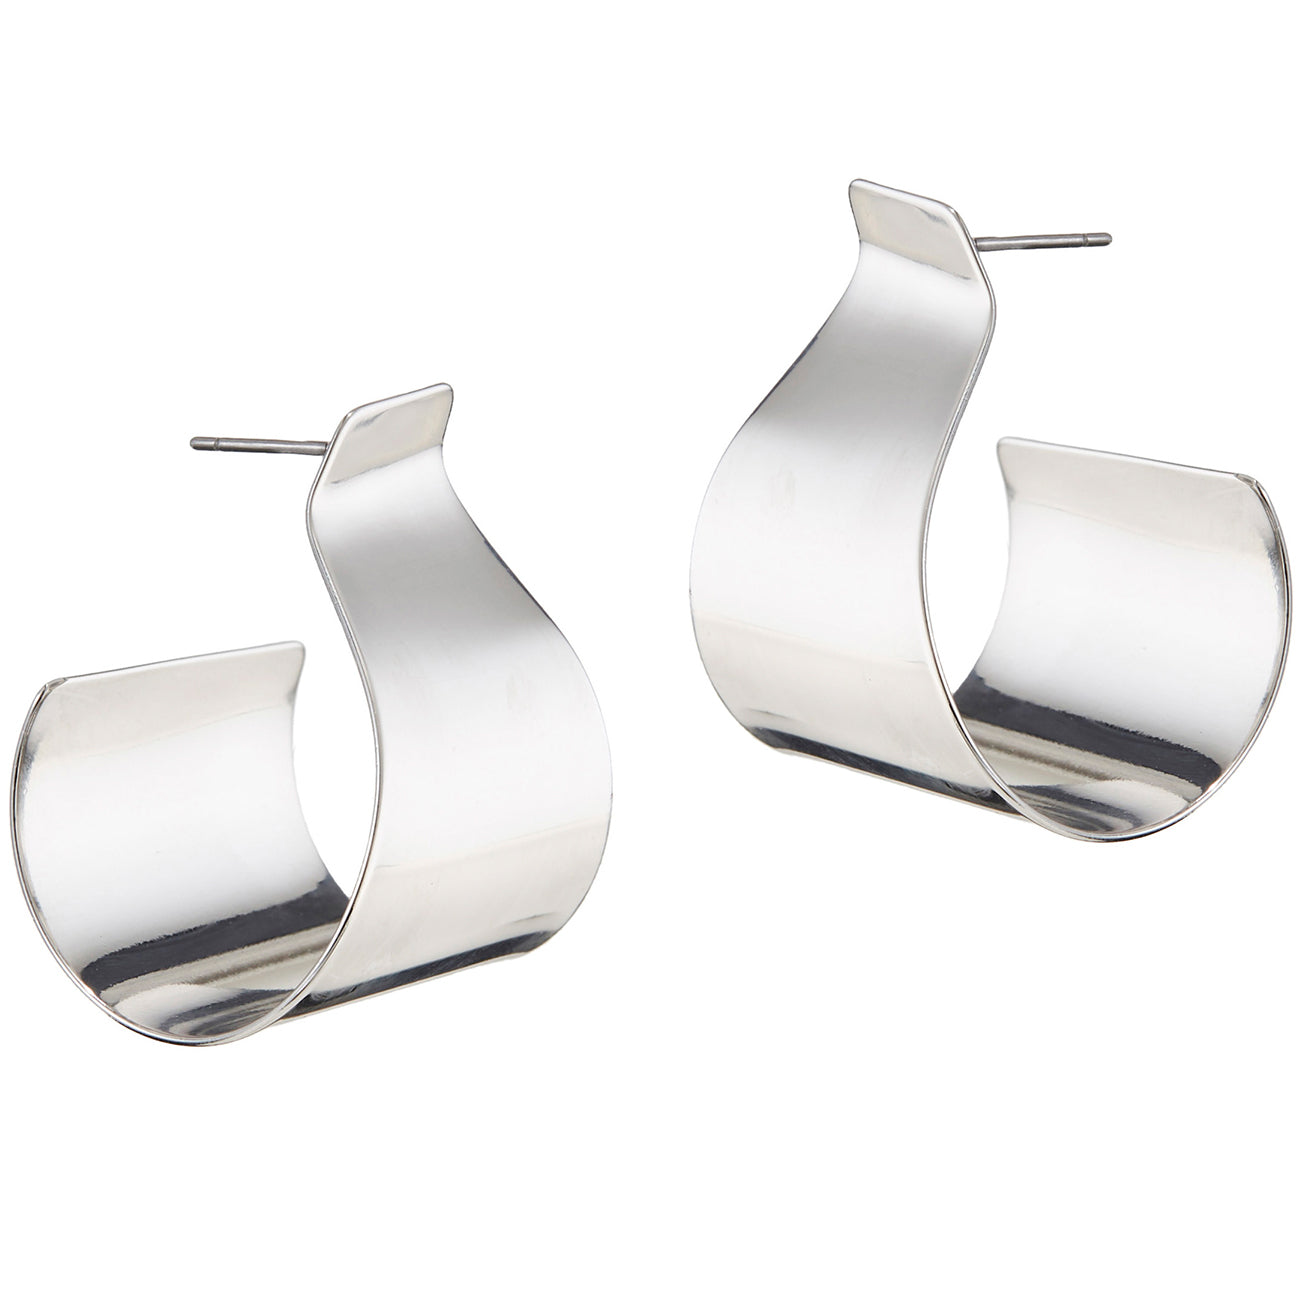 The Dune Hoops by Jenny Bird in Rhodium